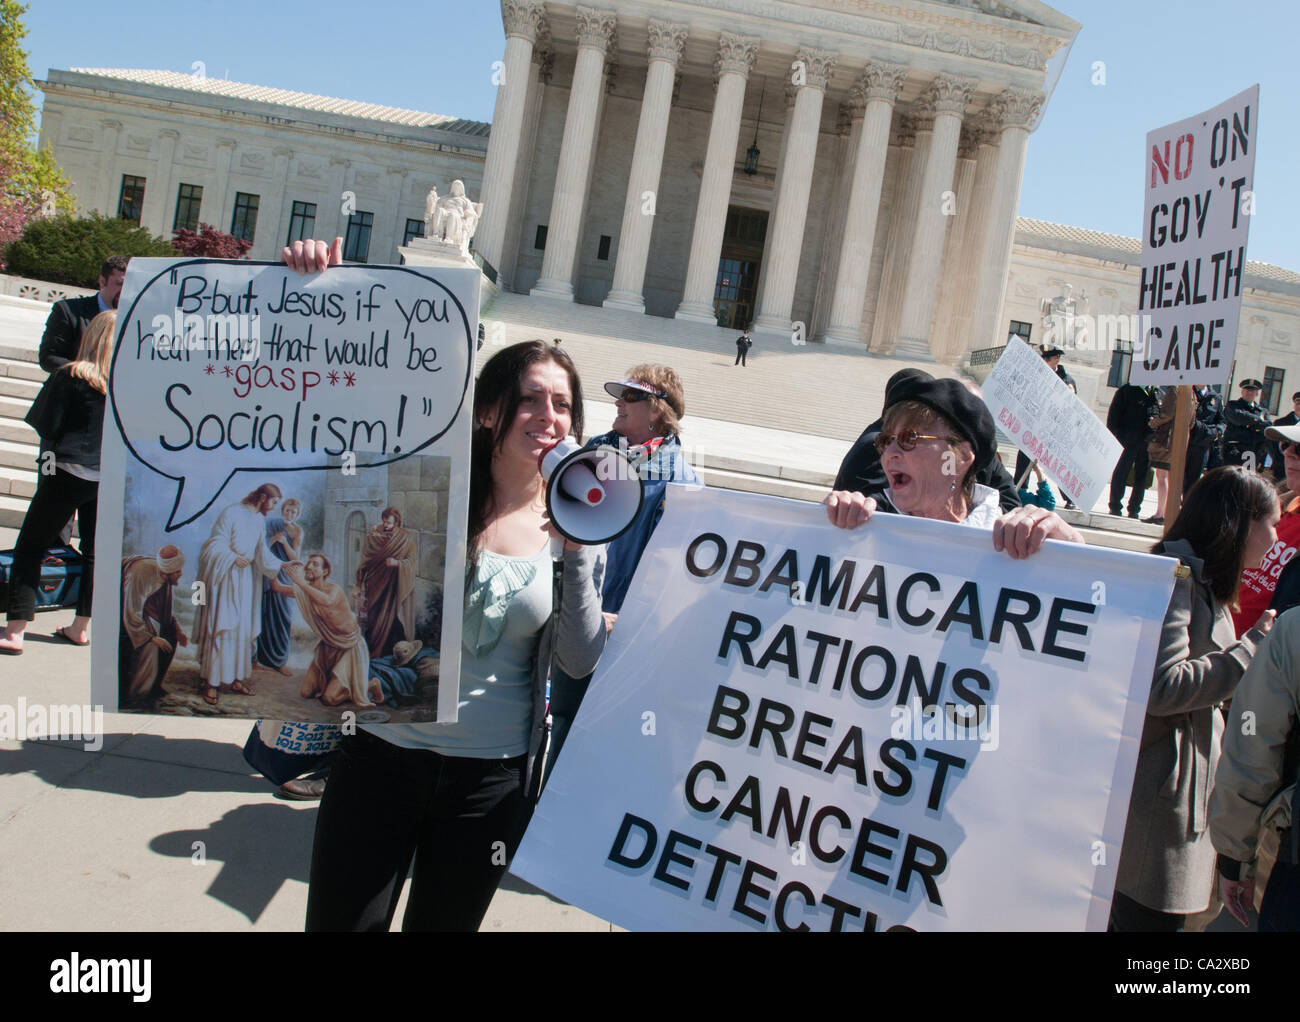 Healthcare bill protesters shout during the second day of Supreme Court debating the constitutionality of Barack - Stock Image